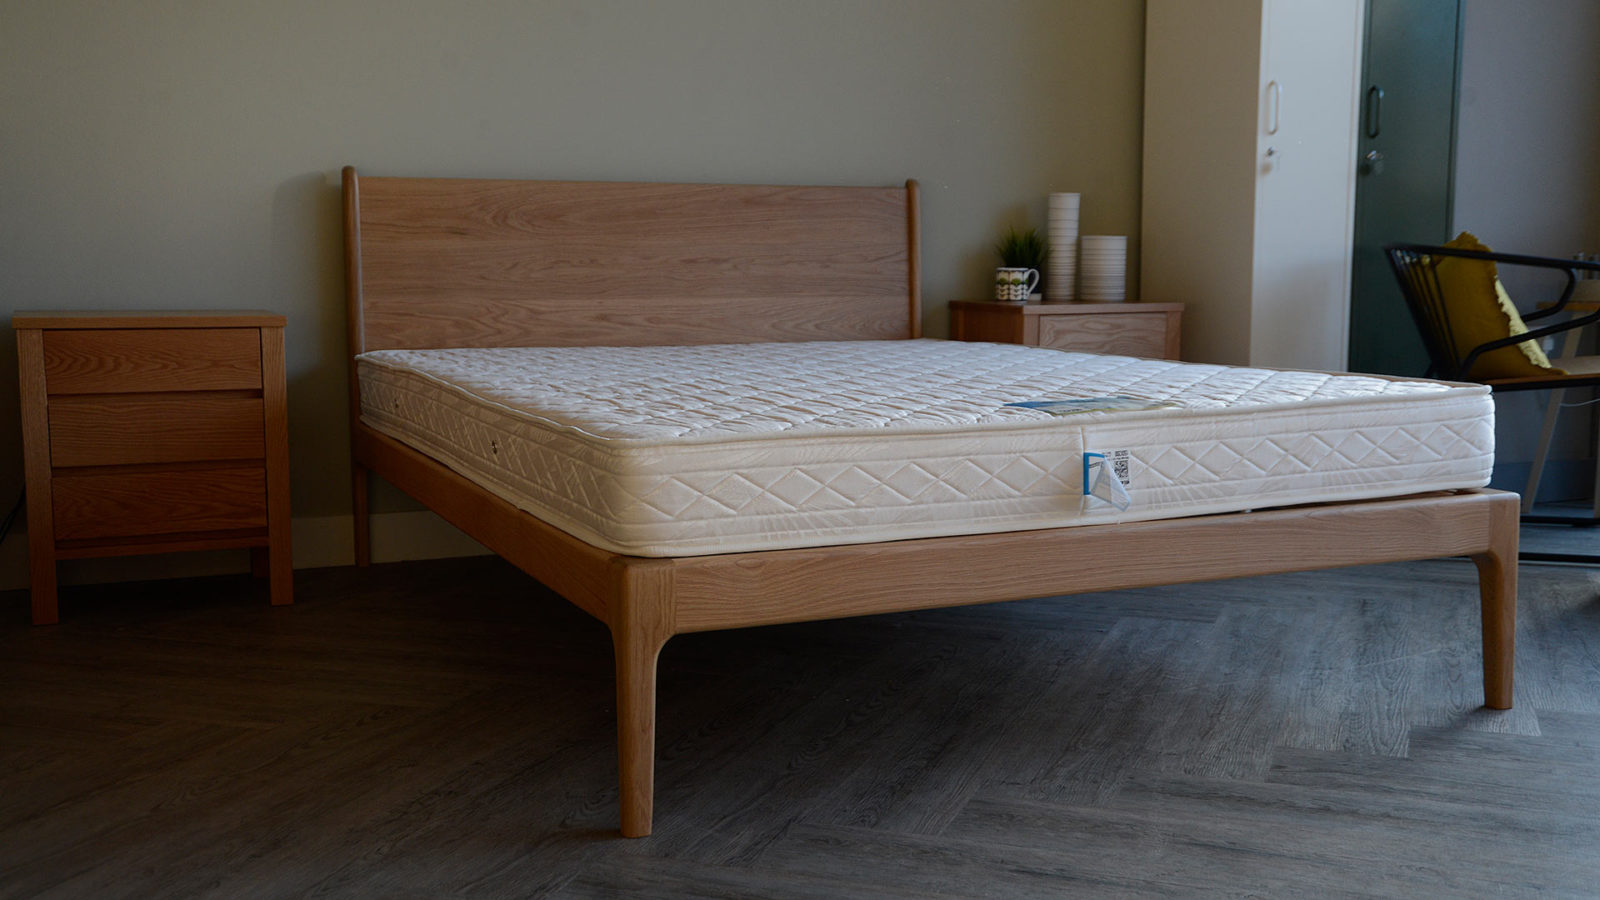 Camden a mid-century style solid oak handmade bed frame